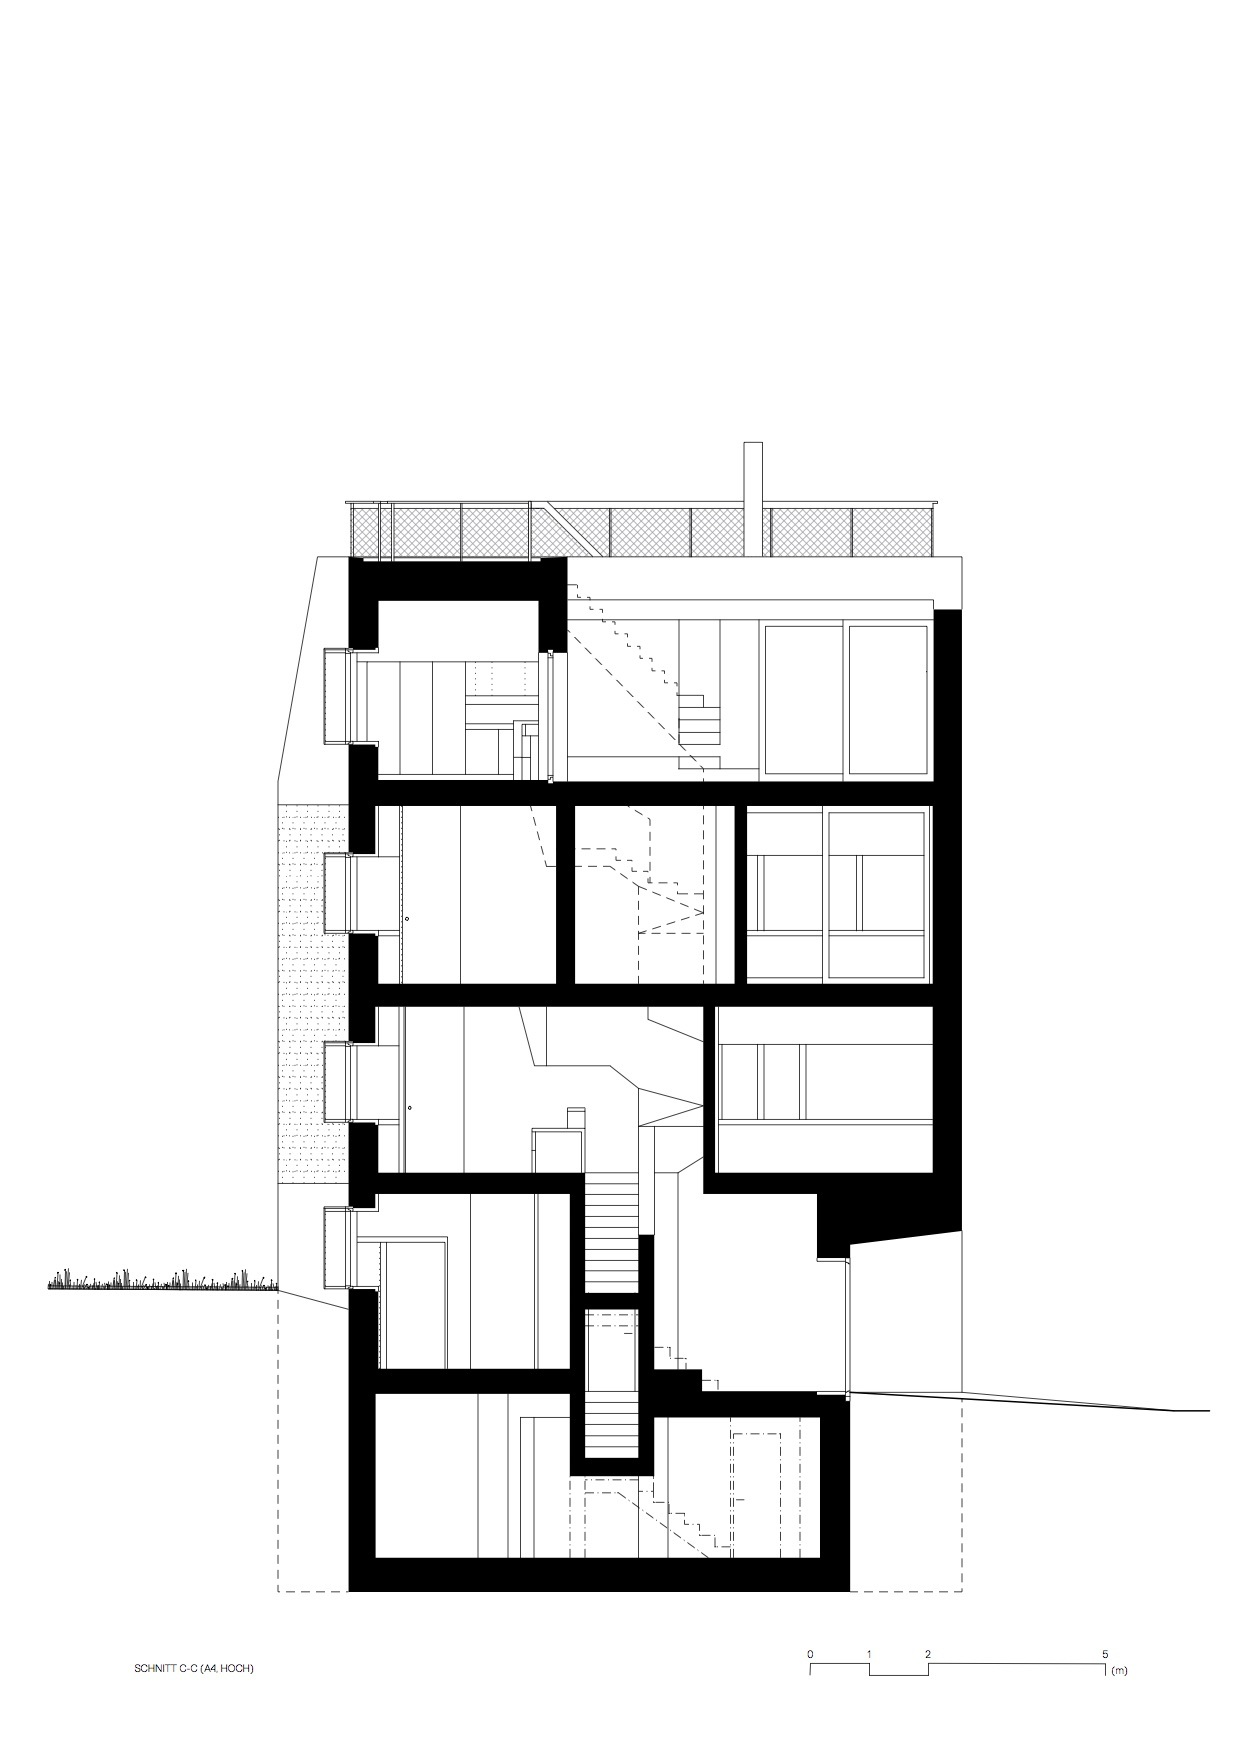 Брутальный дом House Alder в Цюрихе, Швейцария от Andreas Fuhrimann Gabrielle Hächler Architekten, HQ architecture, HQarch, HQ arch, high quality architecture